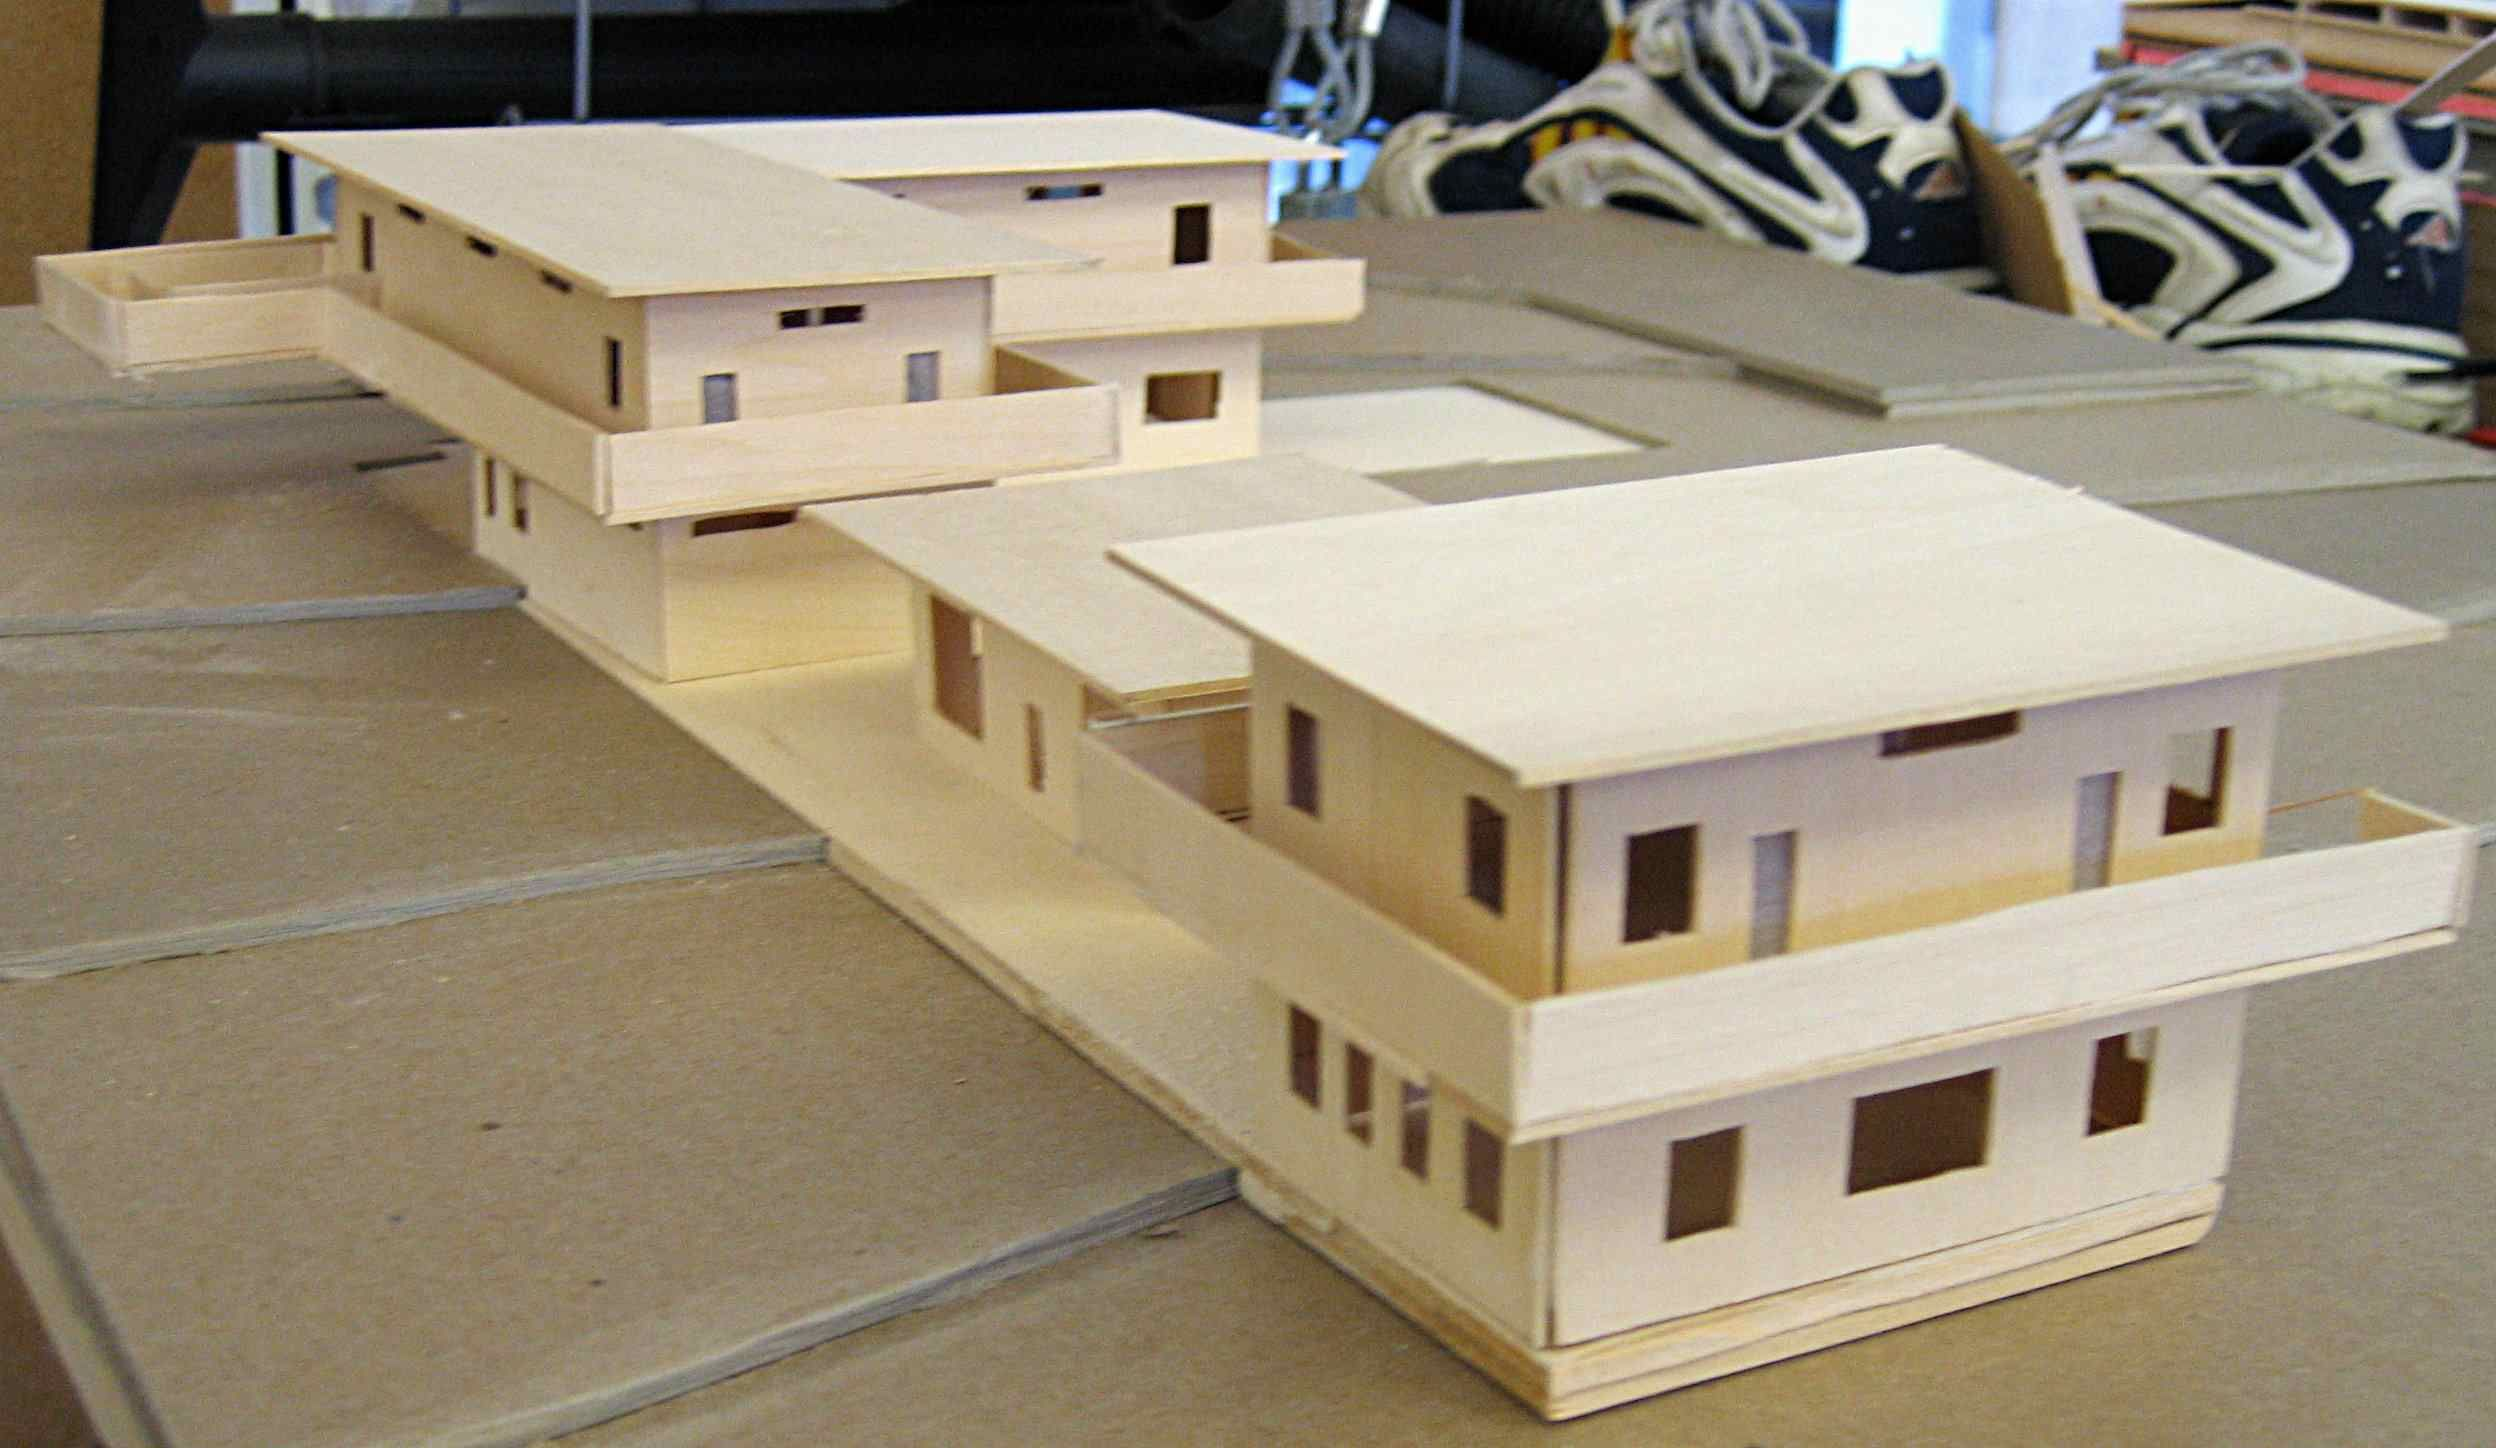 Materials To Build Dollhouses Or Scale Model Buildings Scale Model Building Scale Models How To Make Building